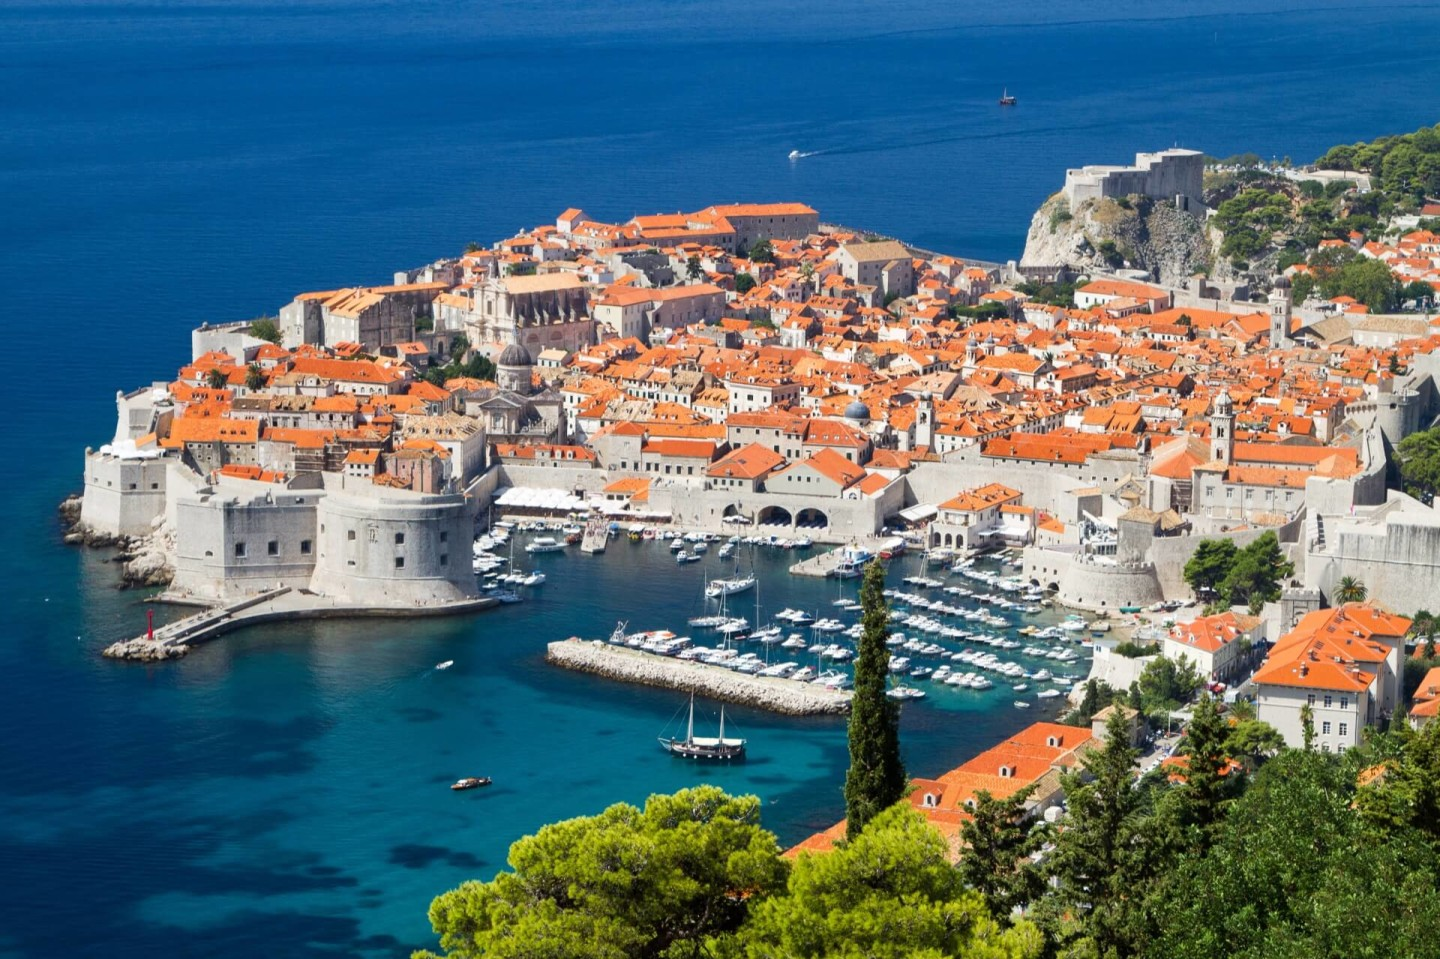 dubrovnik summer bird views the pearl of the adriatic